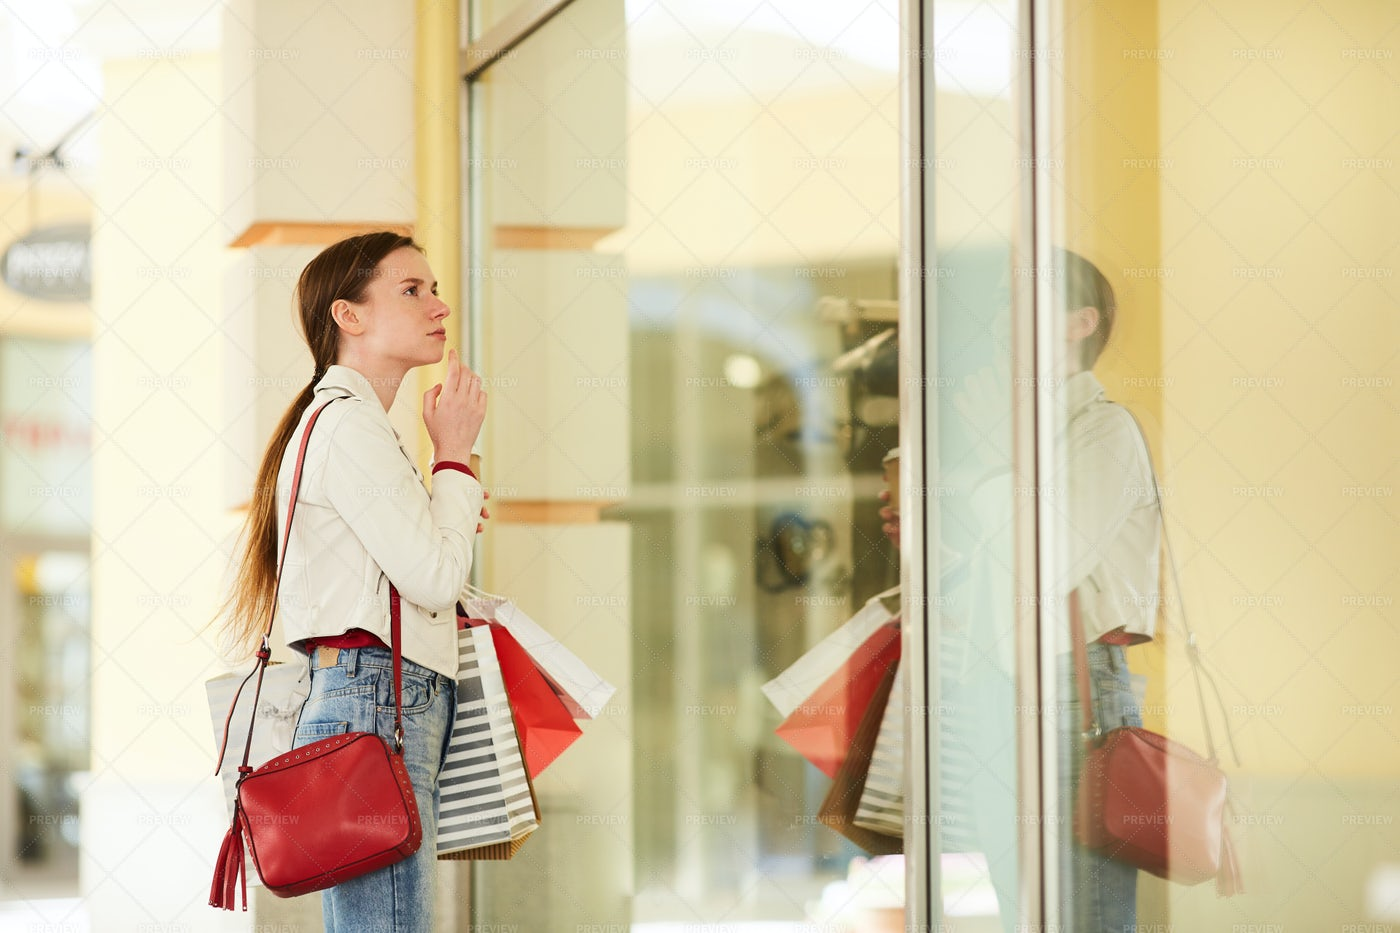 Looking In Boutique Display: Stock Photos